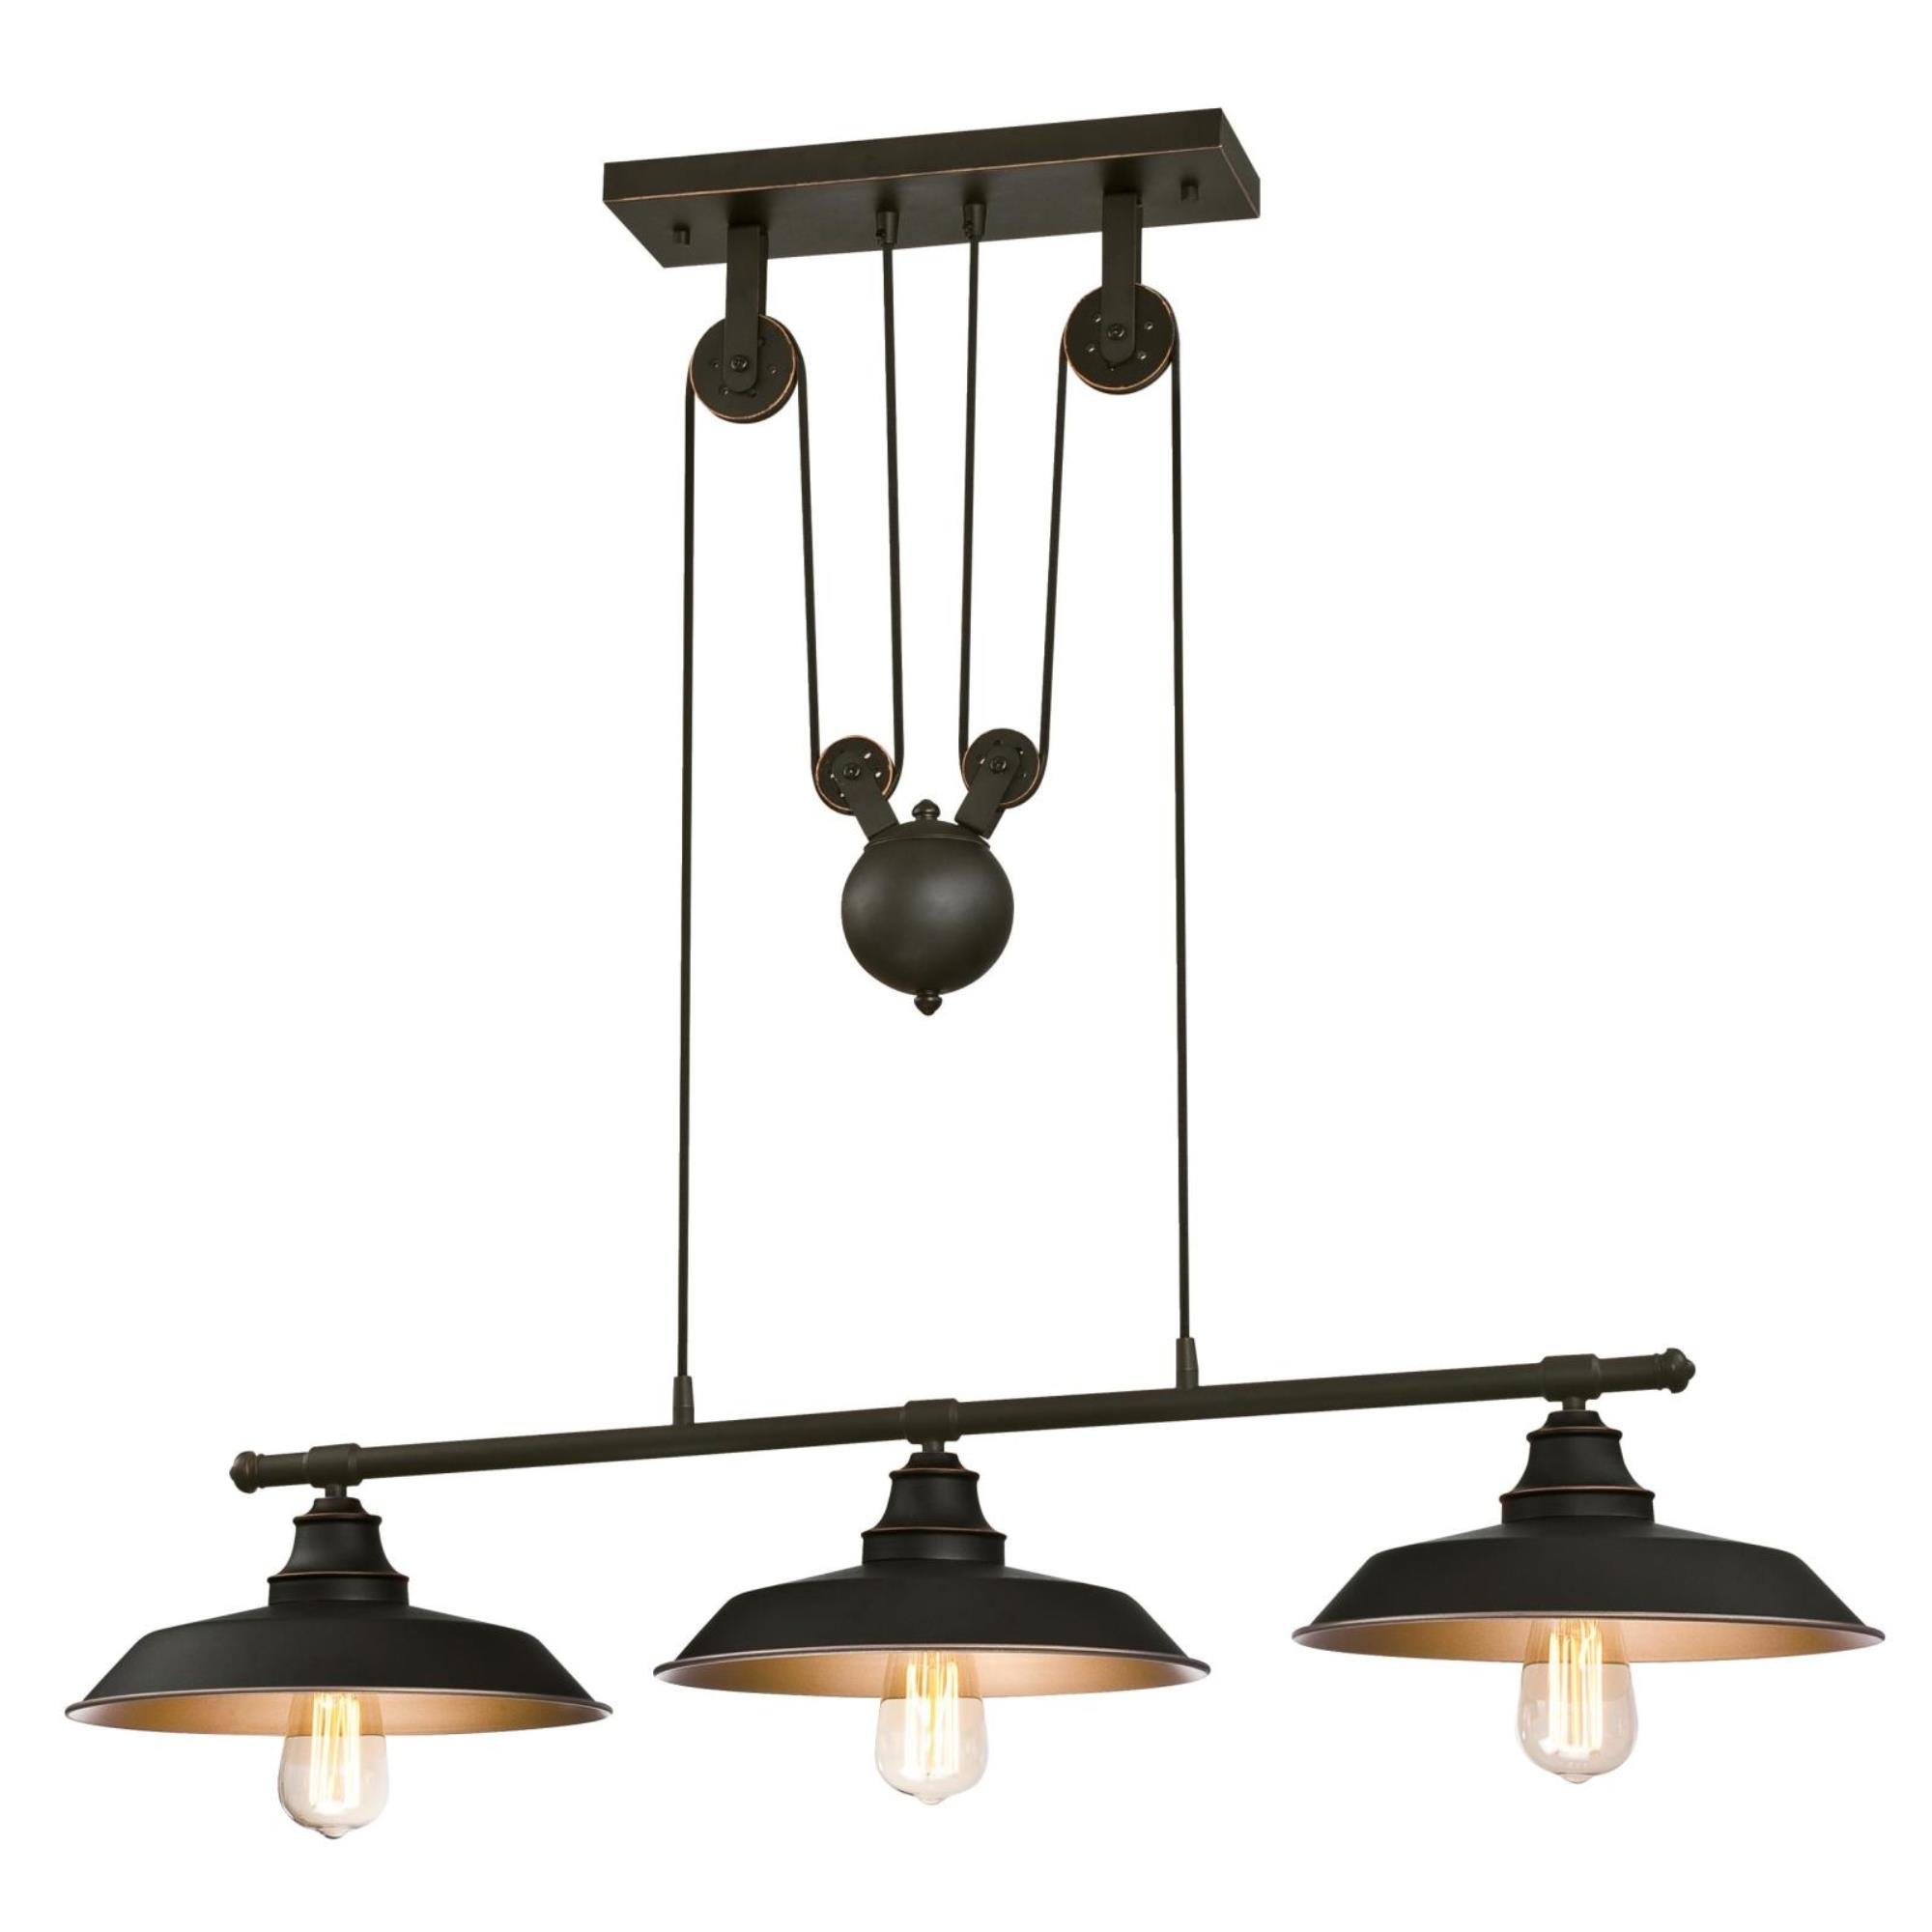 Westinghouse Lighting 6332500 Iron Hill Three-Light Indoor Island Pulley Pendant, Oil Rubbed Finish with Highlights and Metallic Bronze Interior, 3 by Westinghouse Lighting